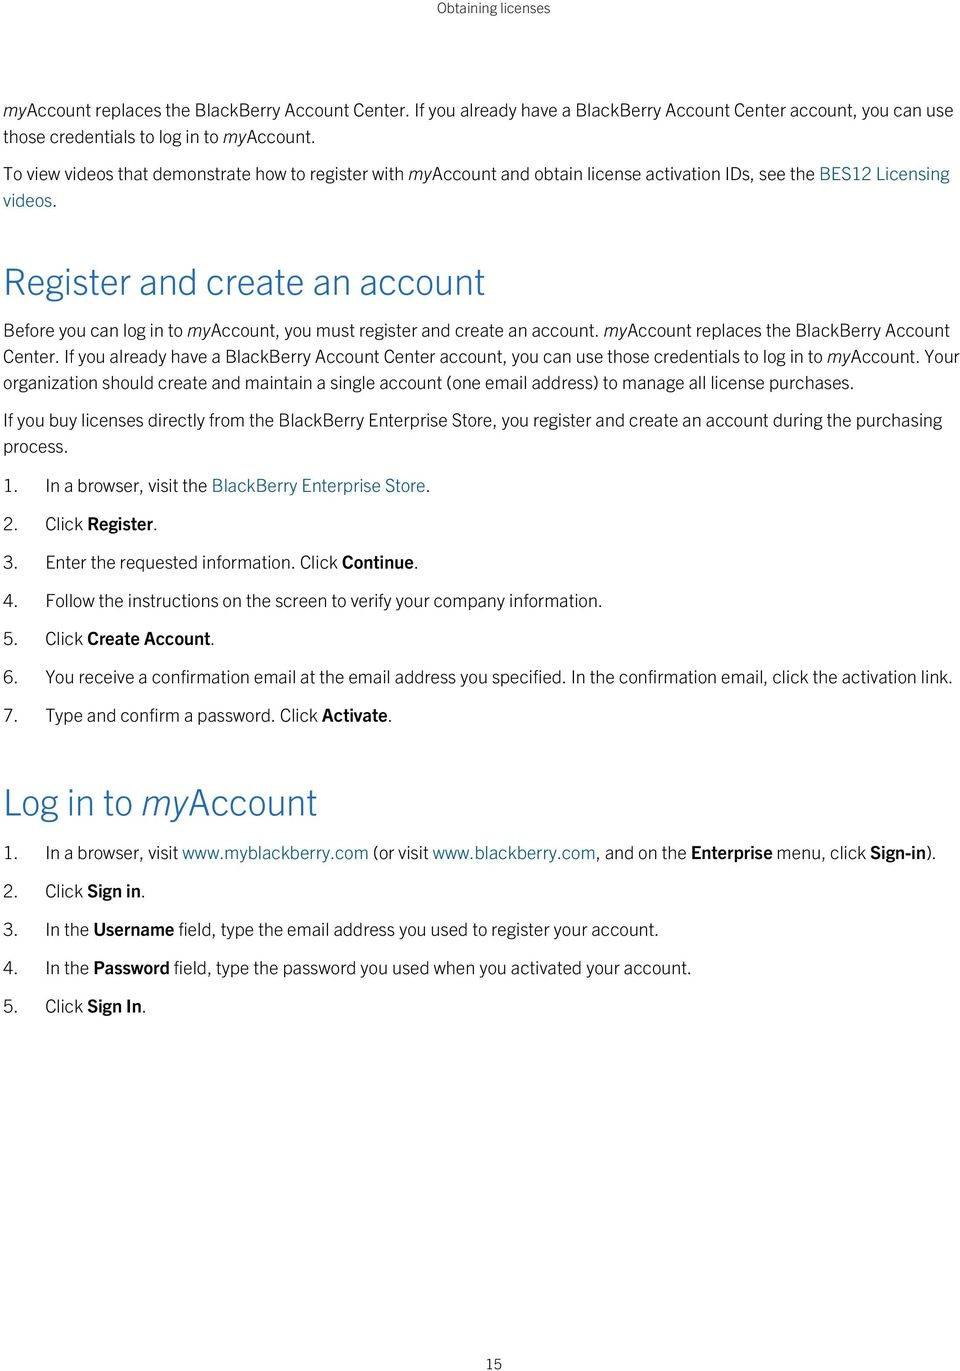 Register and create an account Before you can log in to myaccount, you must register and create an account. myaccount replaces the BlackBerry Account Center.